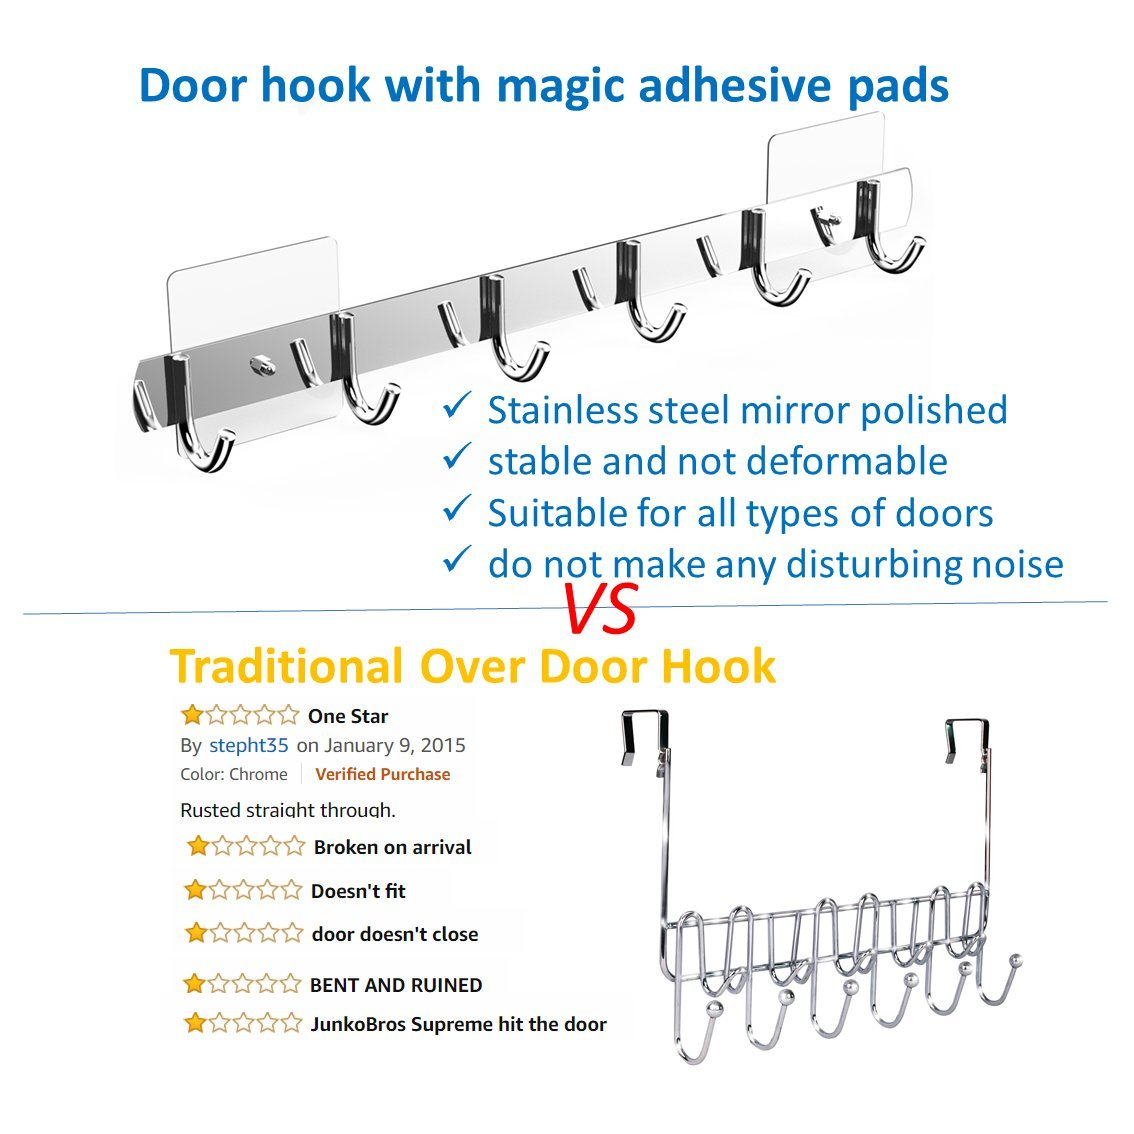 Adjustable Removable Polished Finish Over The Door Coat Rack with Magic Adhesive Pads Stainless Steel EINFAGOOD Over The Door Hooks 6 Hooks